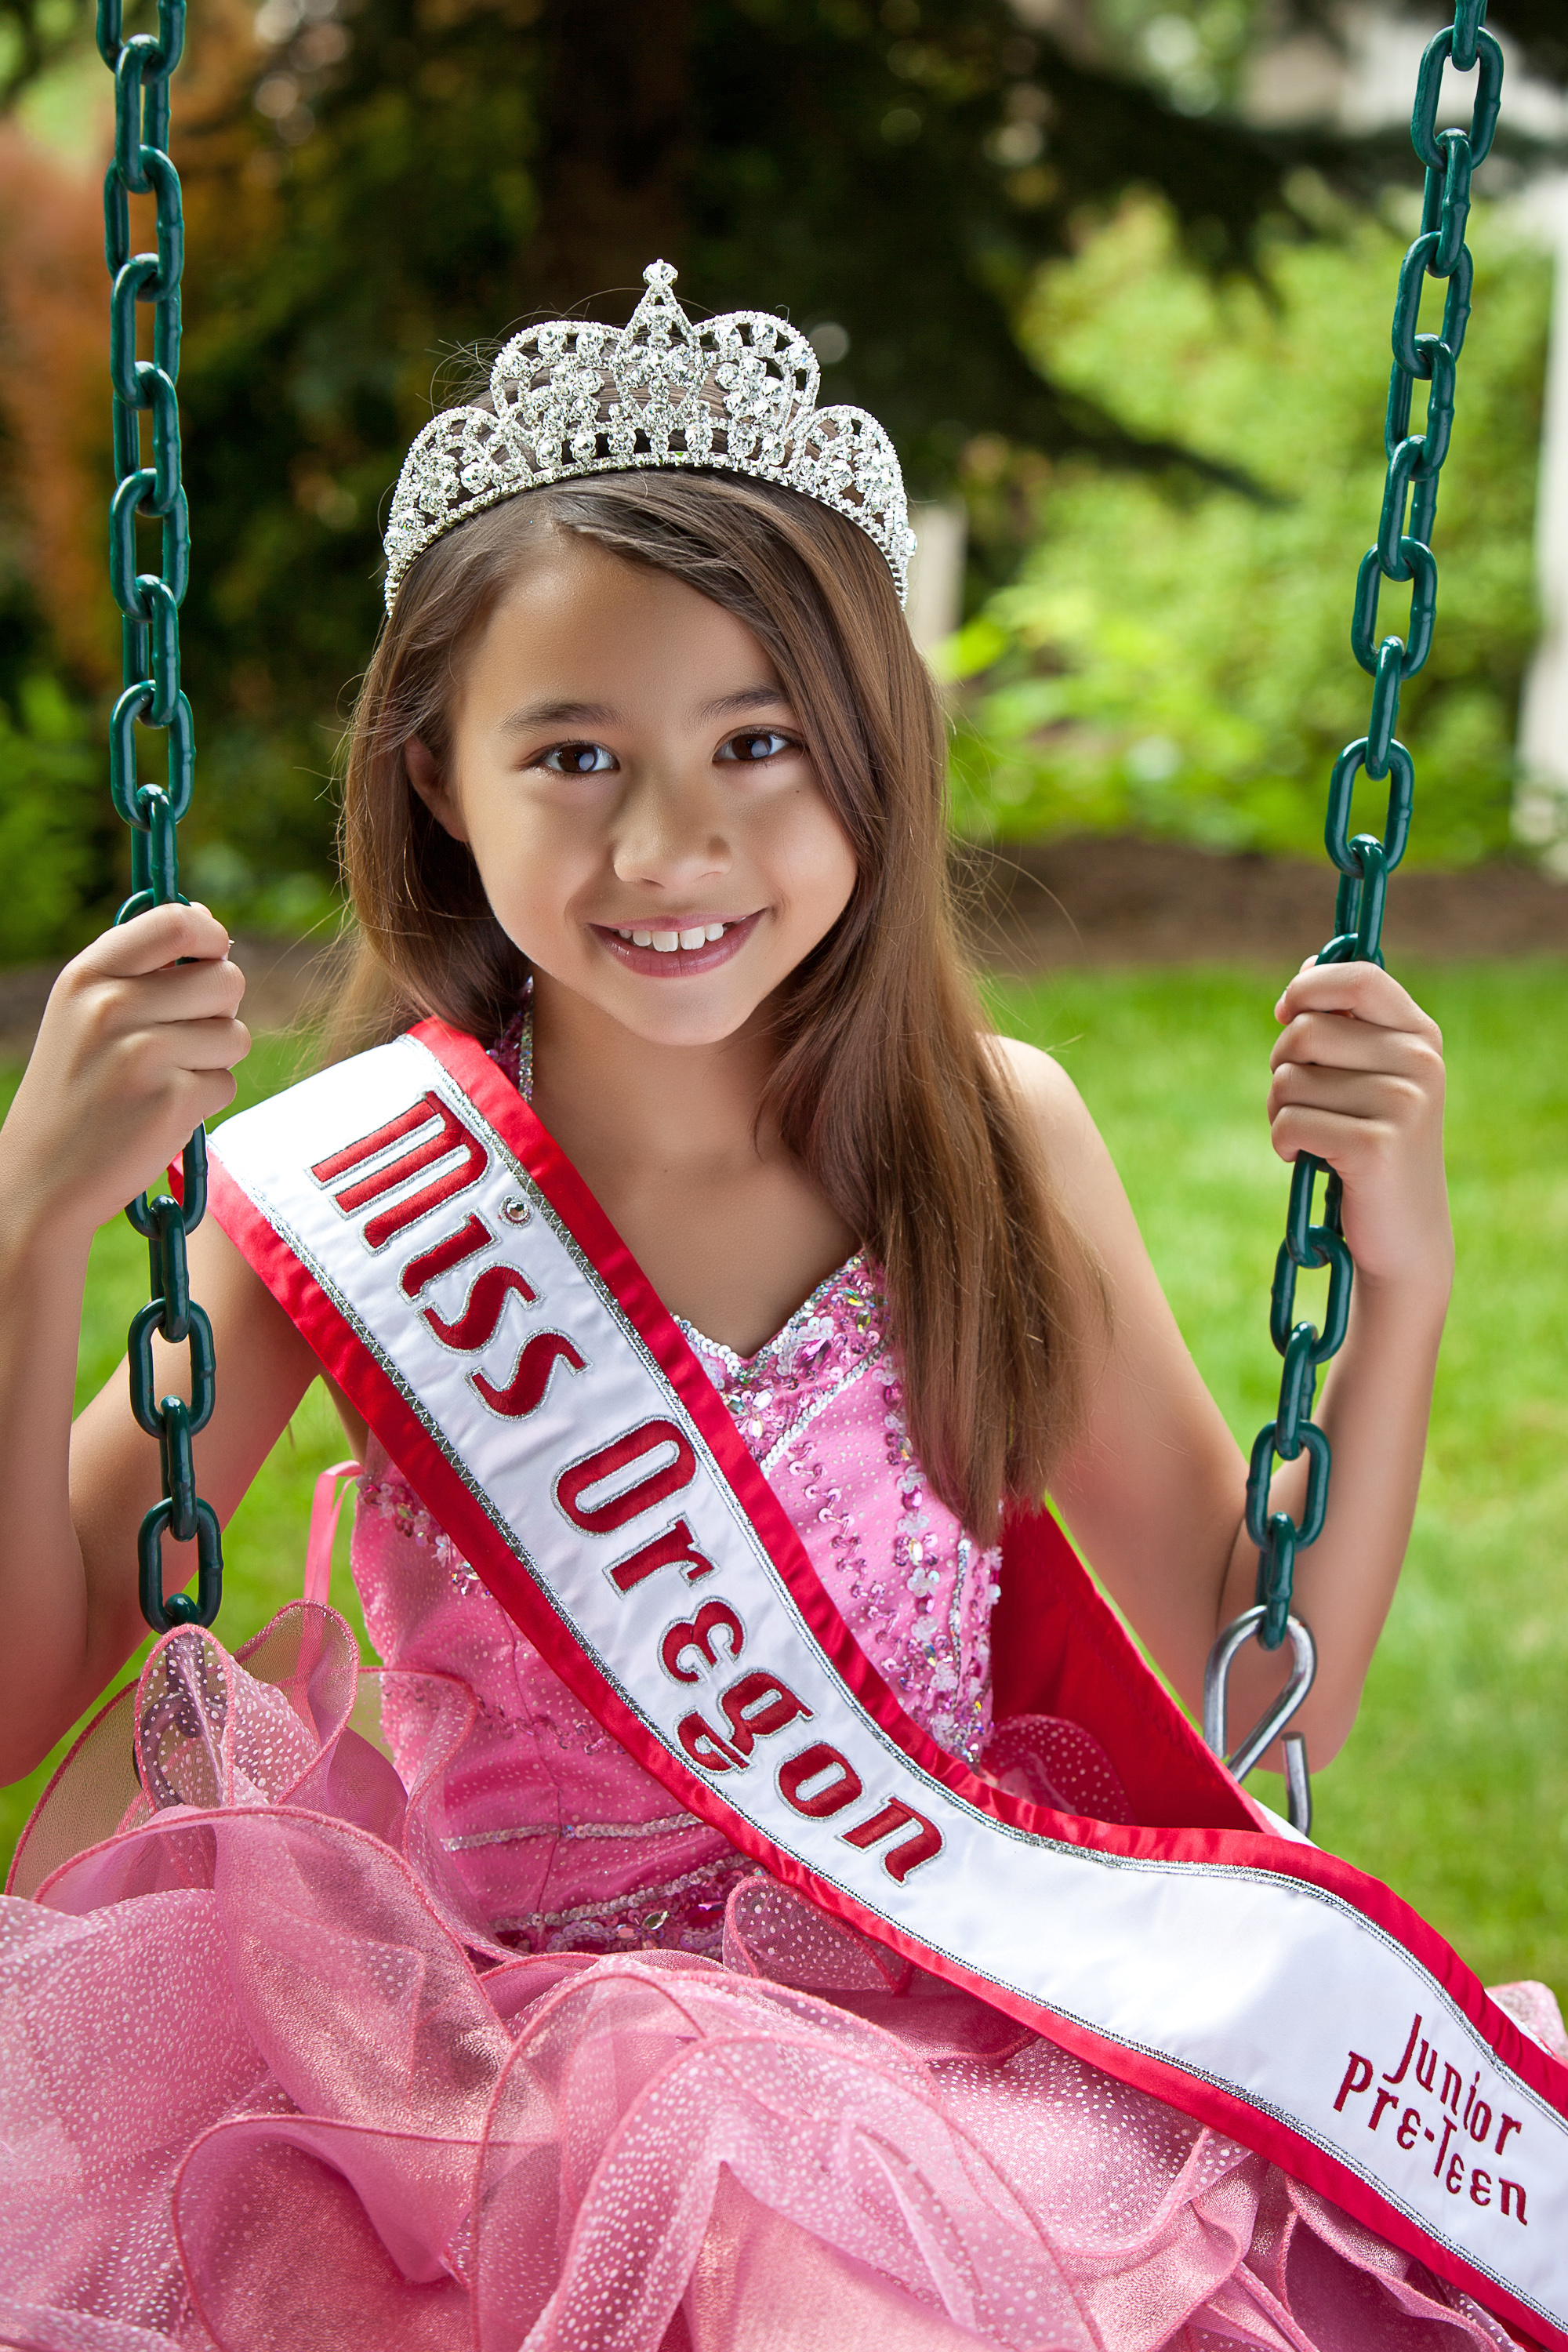 Assured. Miss junior teen pagent consider, that